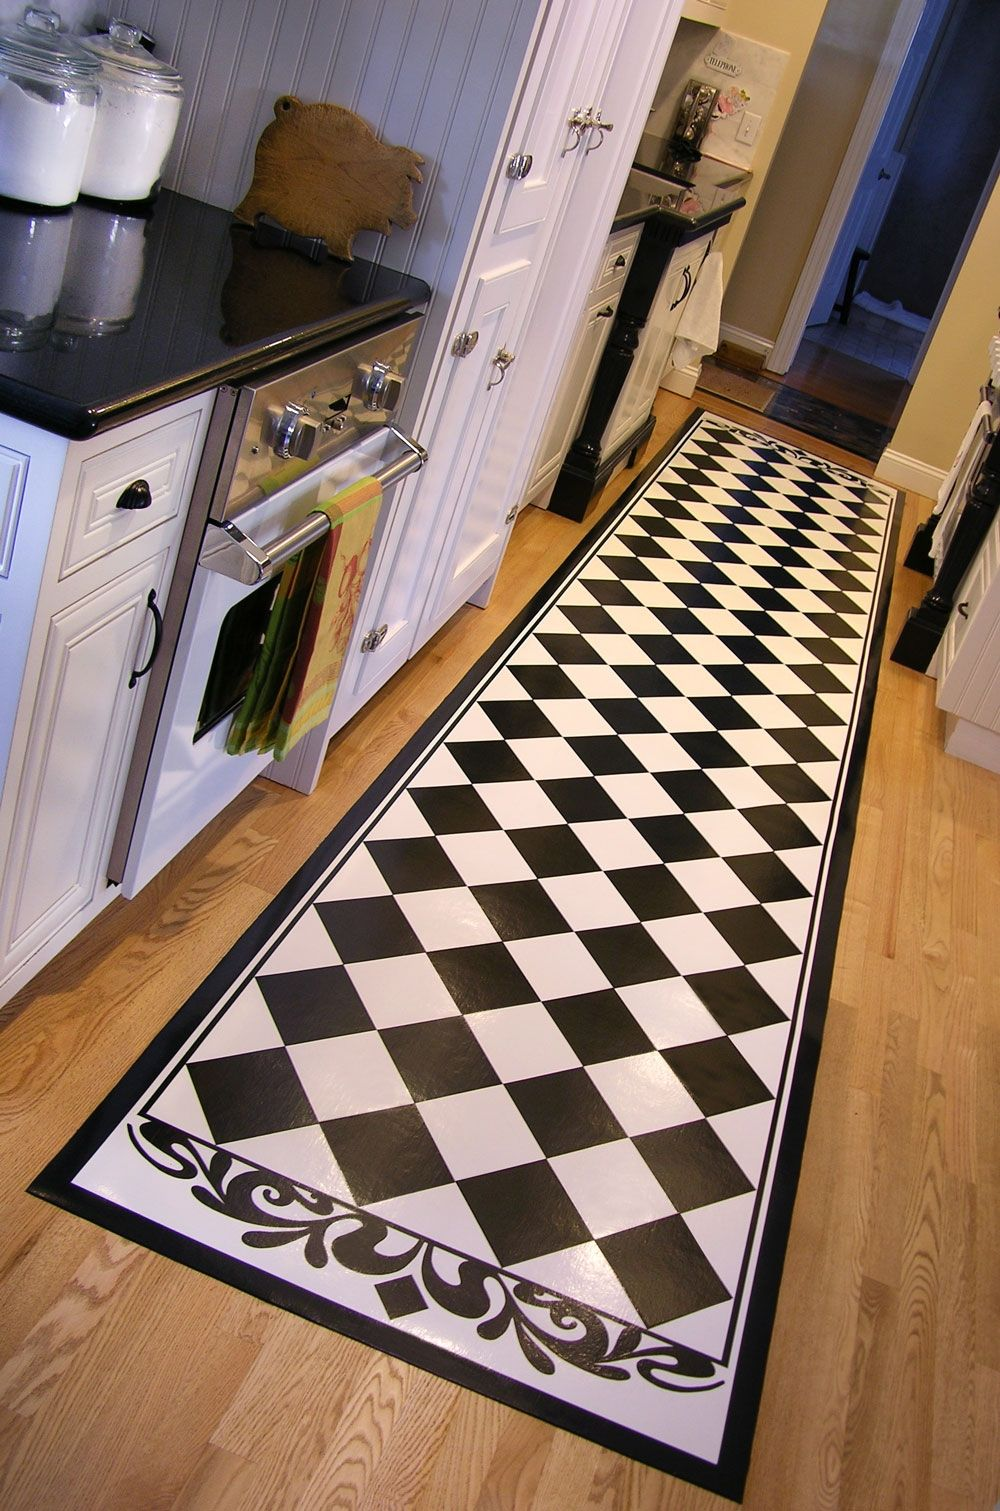 Kitchen kitchen floor mats intended for stylish kitchen floor mat decorating pictures a1houston in remarkable kitchen floor mats remarkable kitchen floor